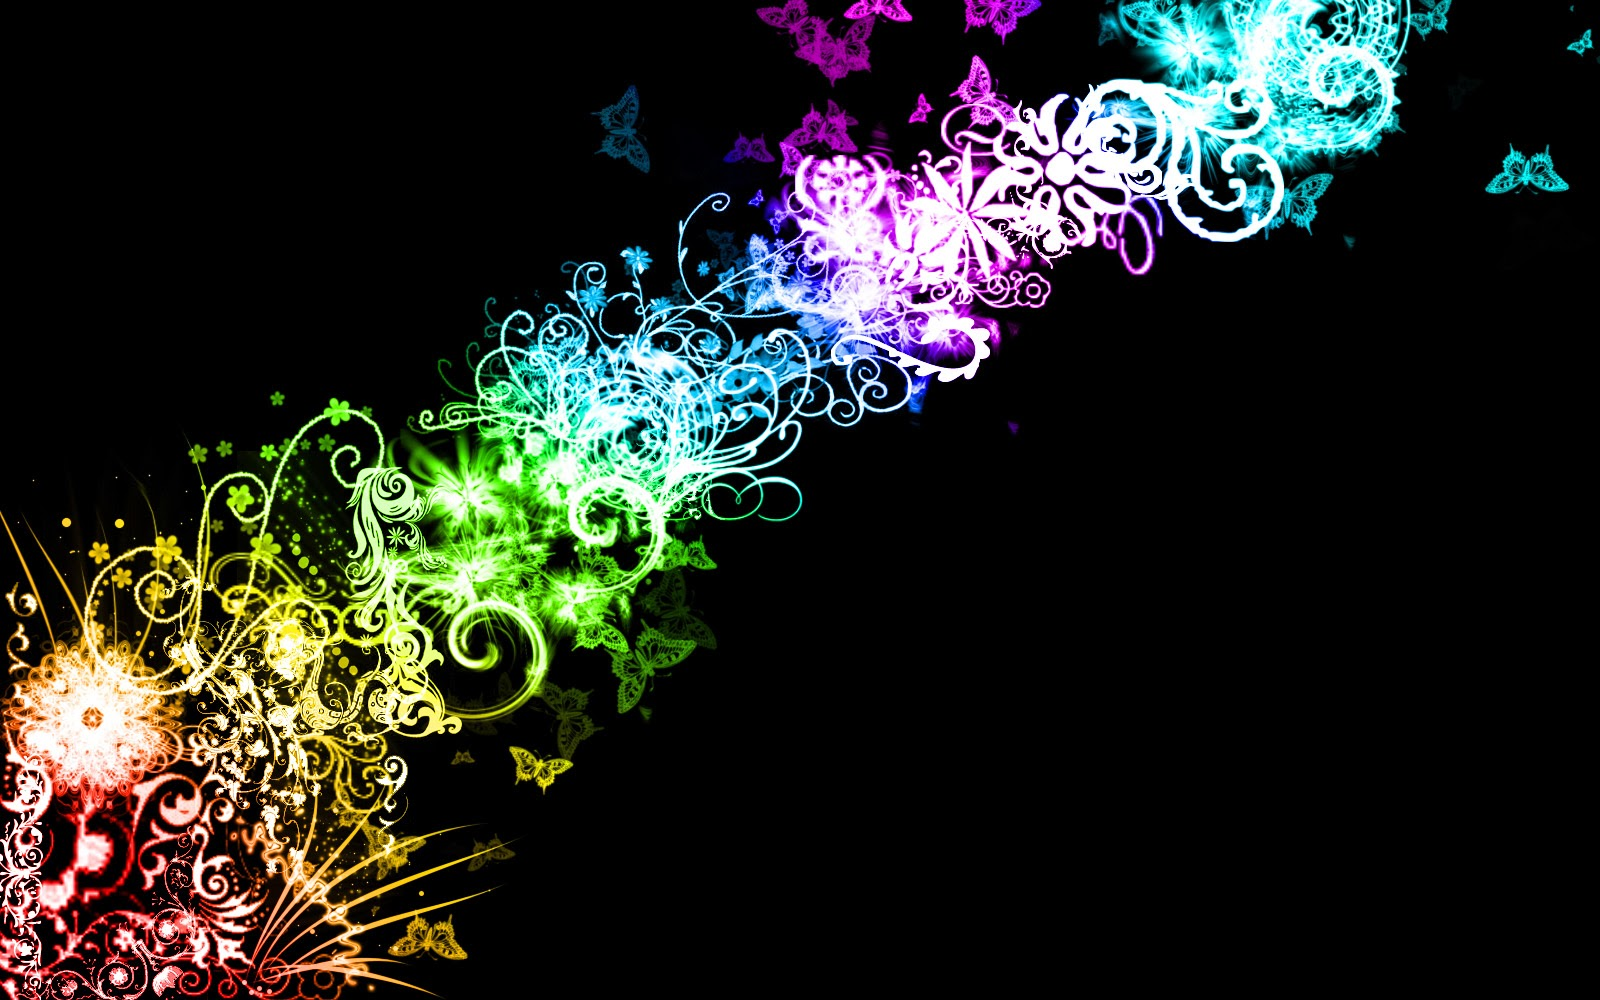 Abstract Swirls Wallpapers Hd Funny Videos Hot